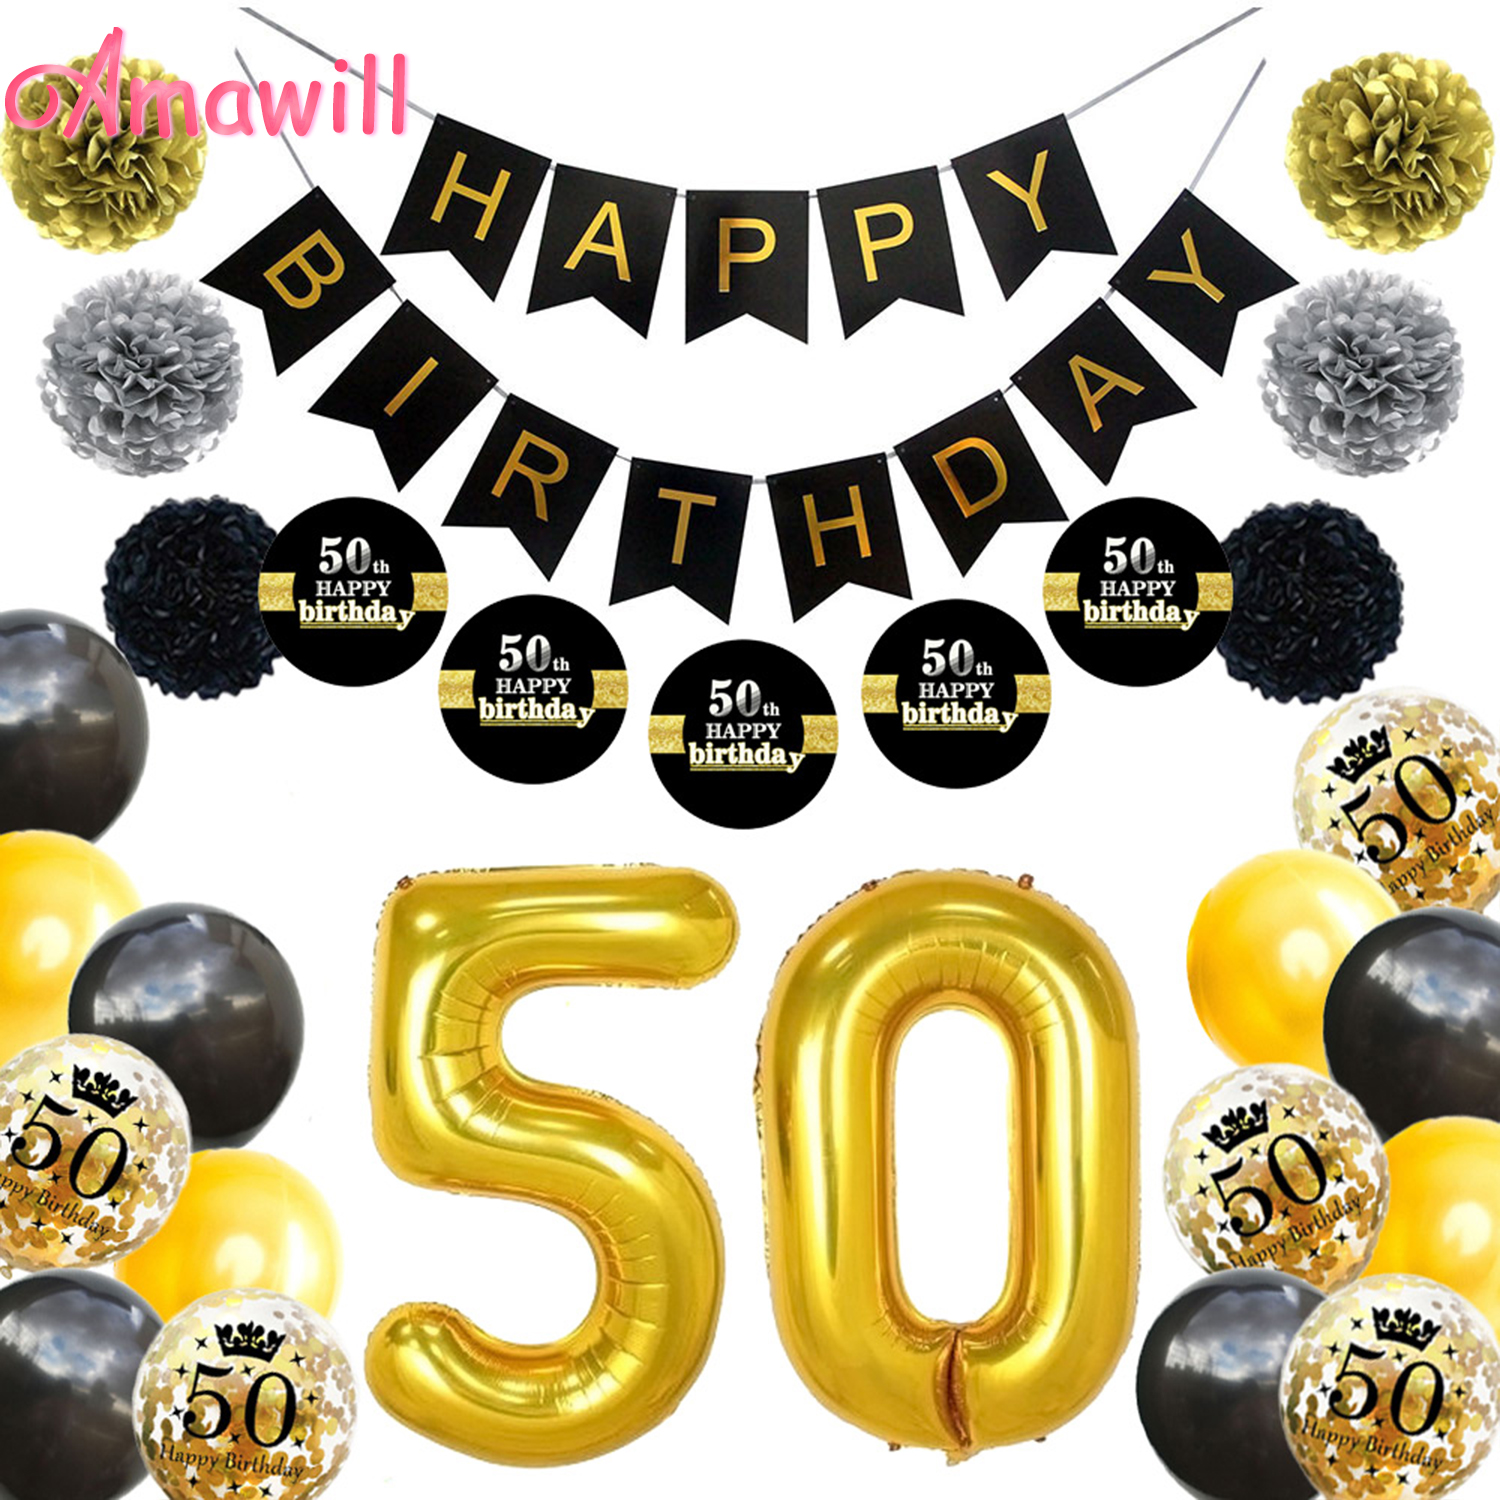 Amawil 50th Birthday Party Decorations Adult Latex Confetti Balloons Paper Flowers Black Stickers <font><b>50</b></font> Years Old Party Supplies 7D image